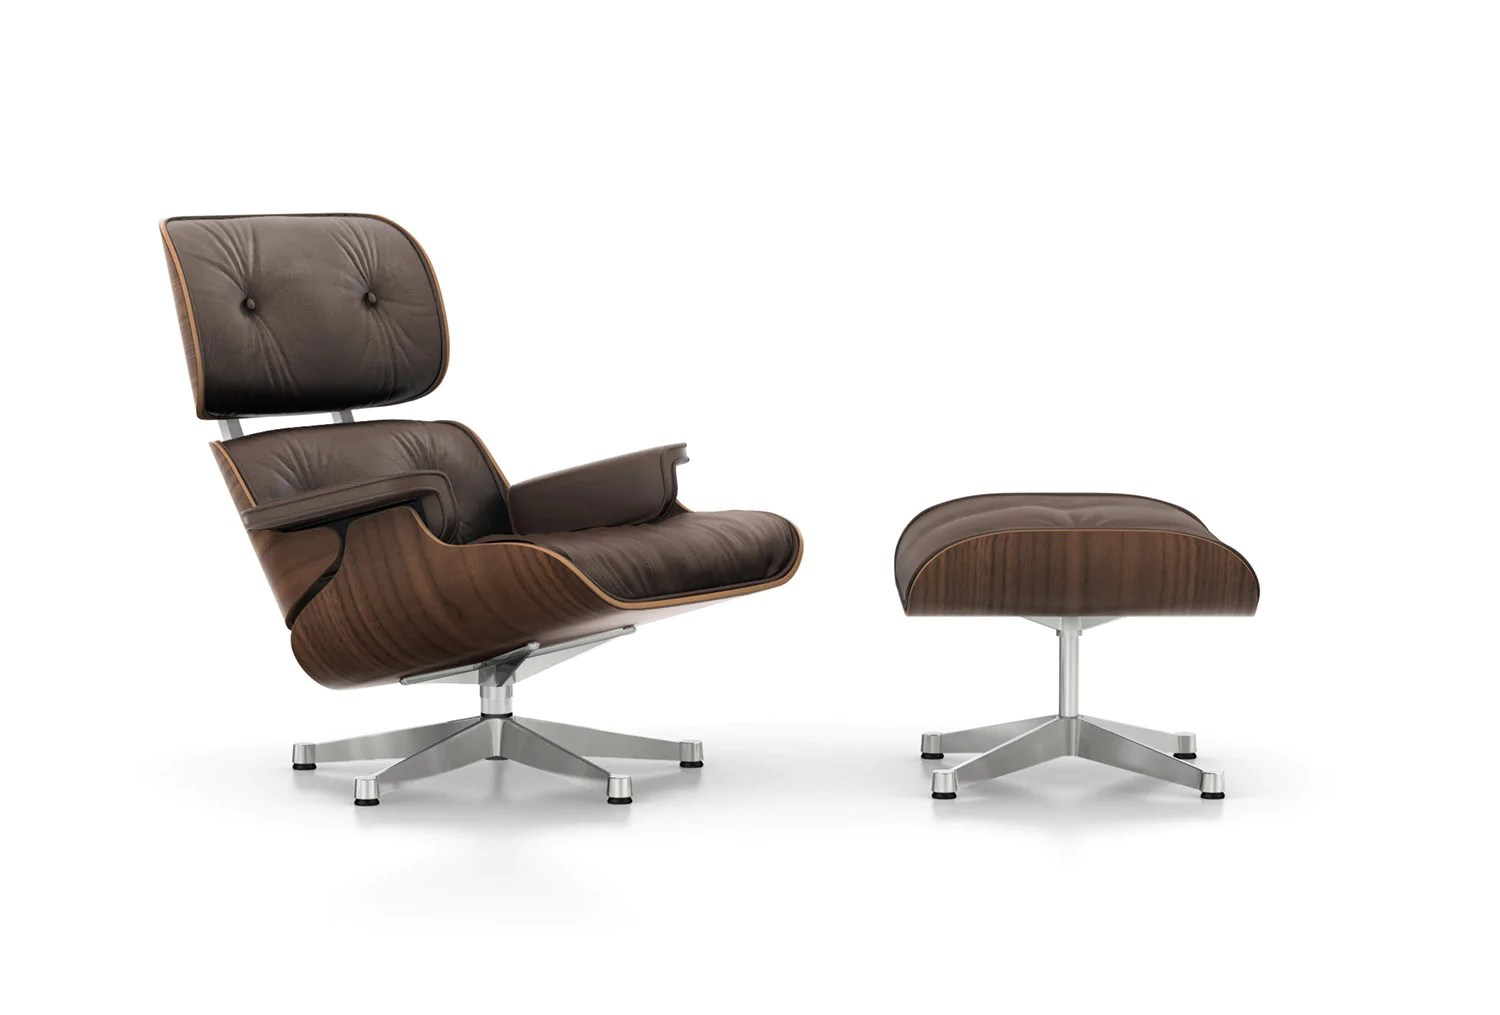 Eames Lounge Sessel Eames Lounge Chair Black Pigmented Walnut